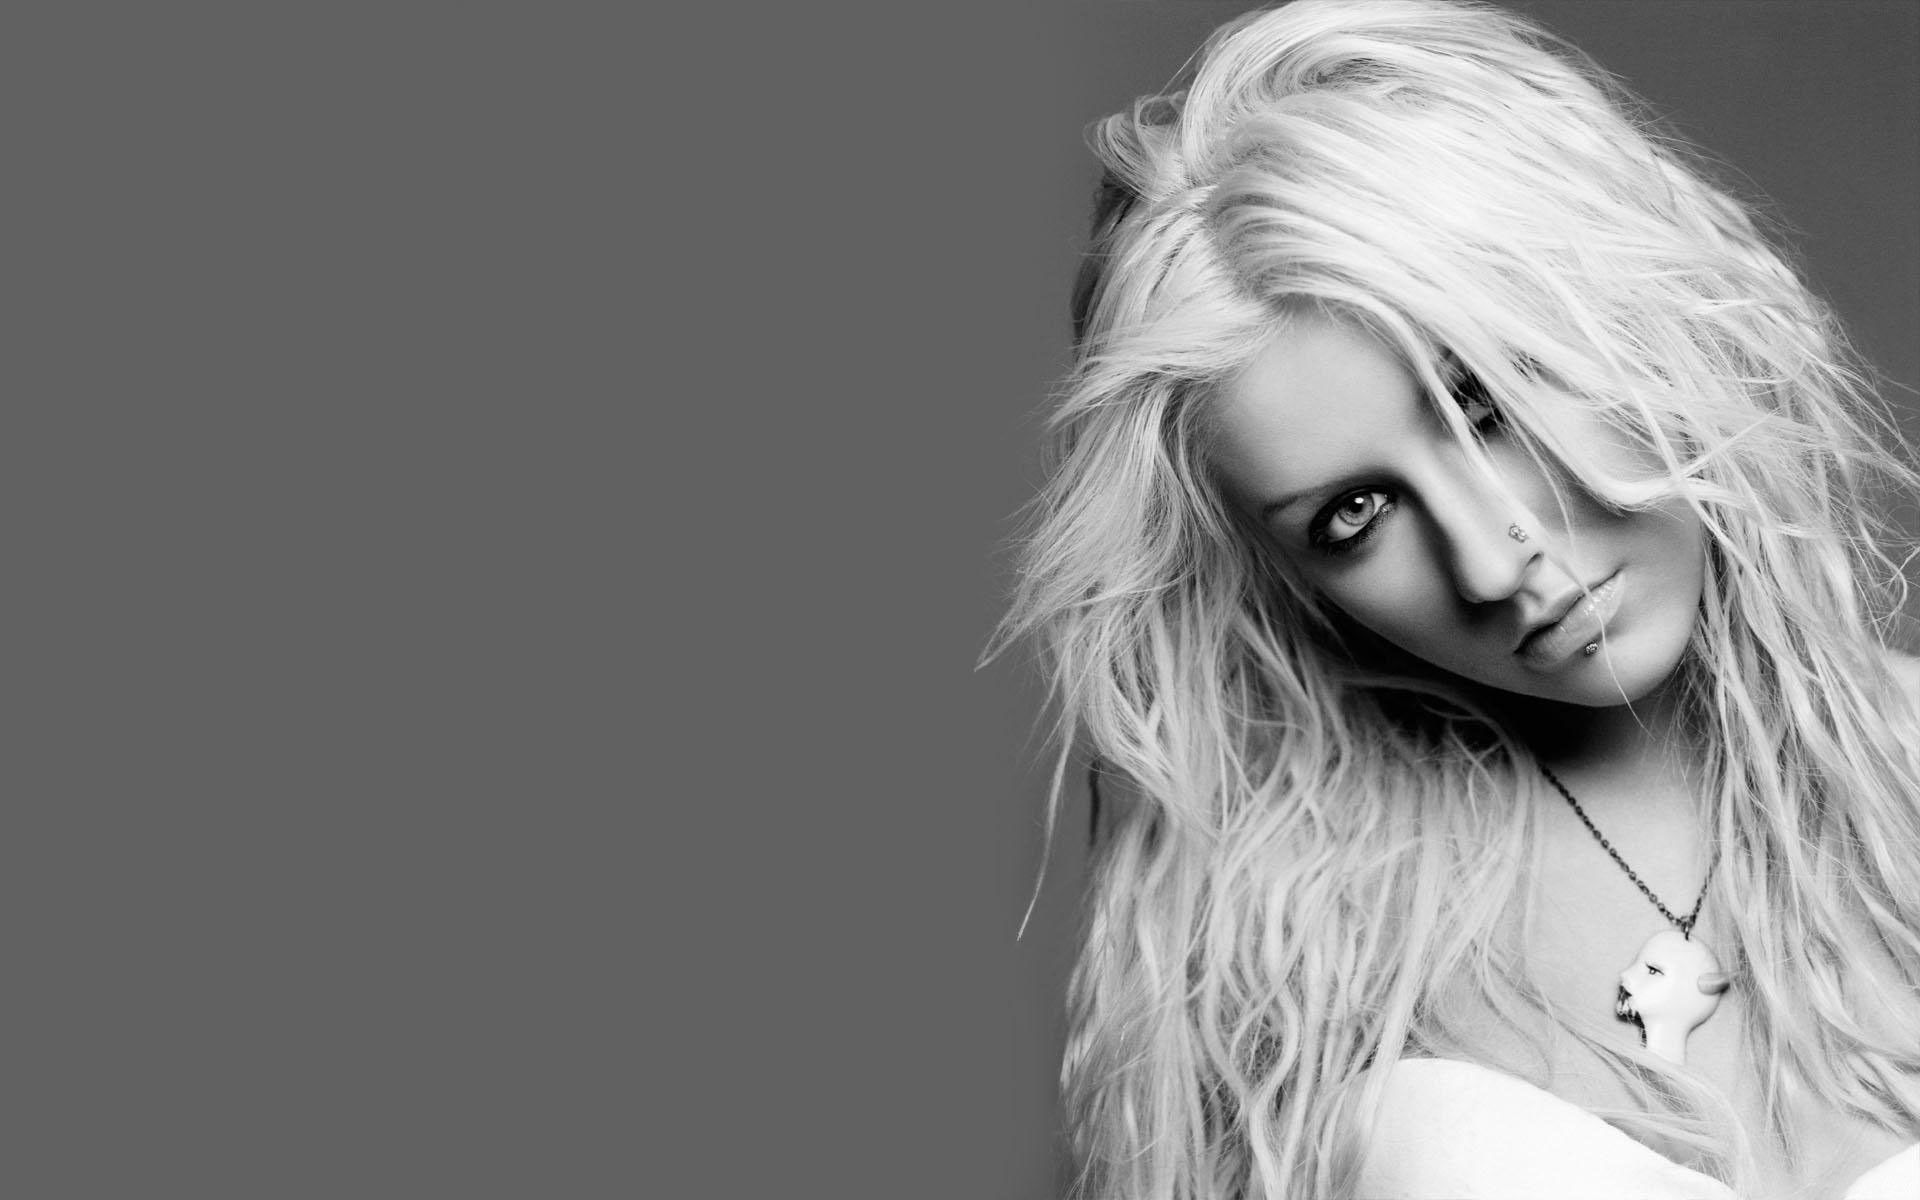 Download Christina Maria Aguilera Black And White HD Wallpaper Search 1920x1200